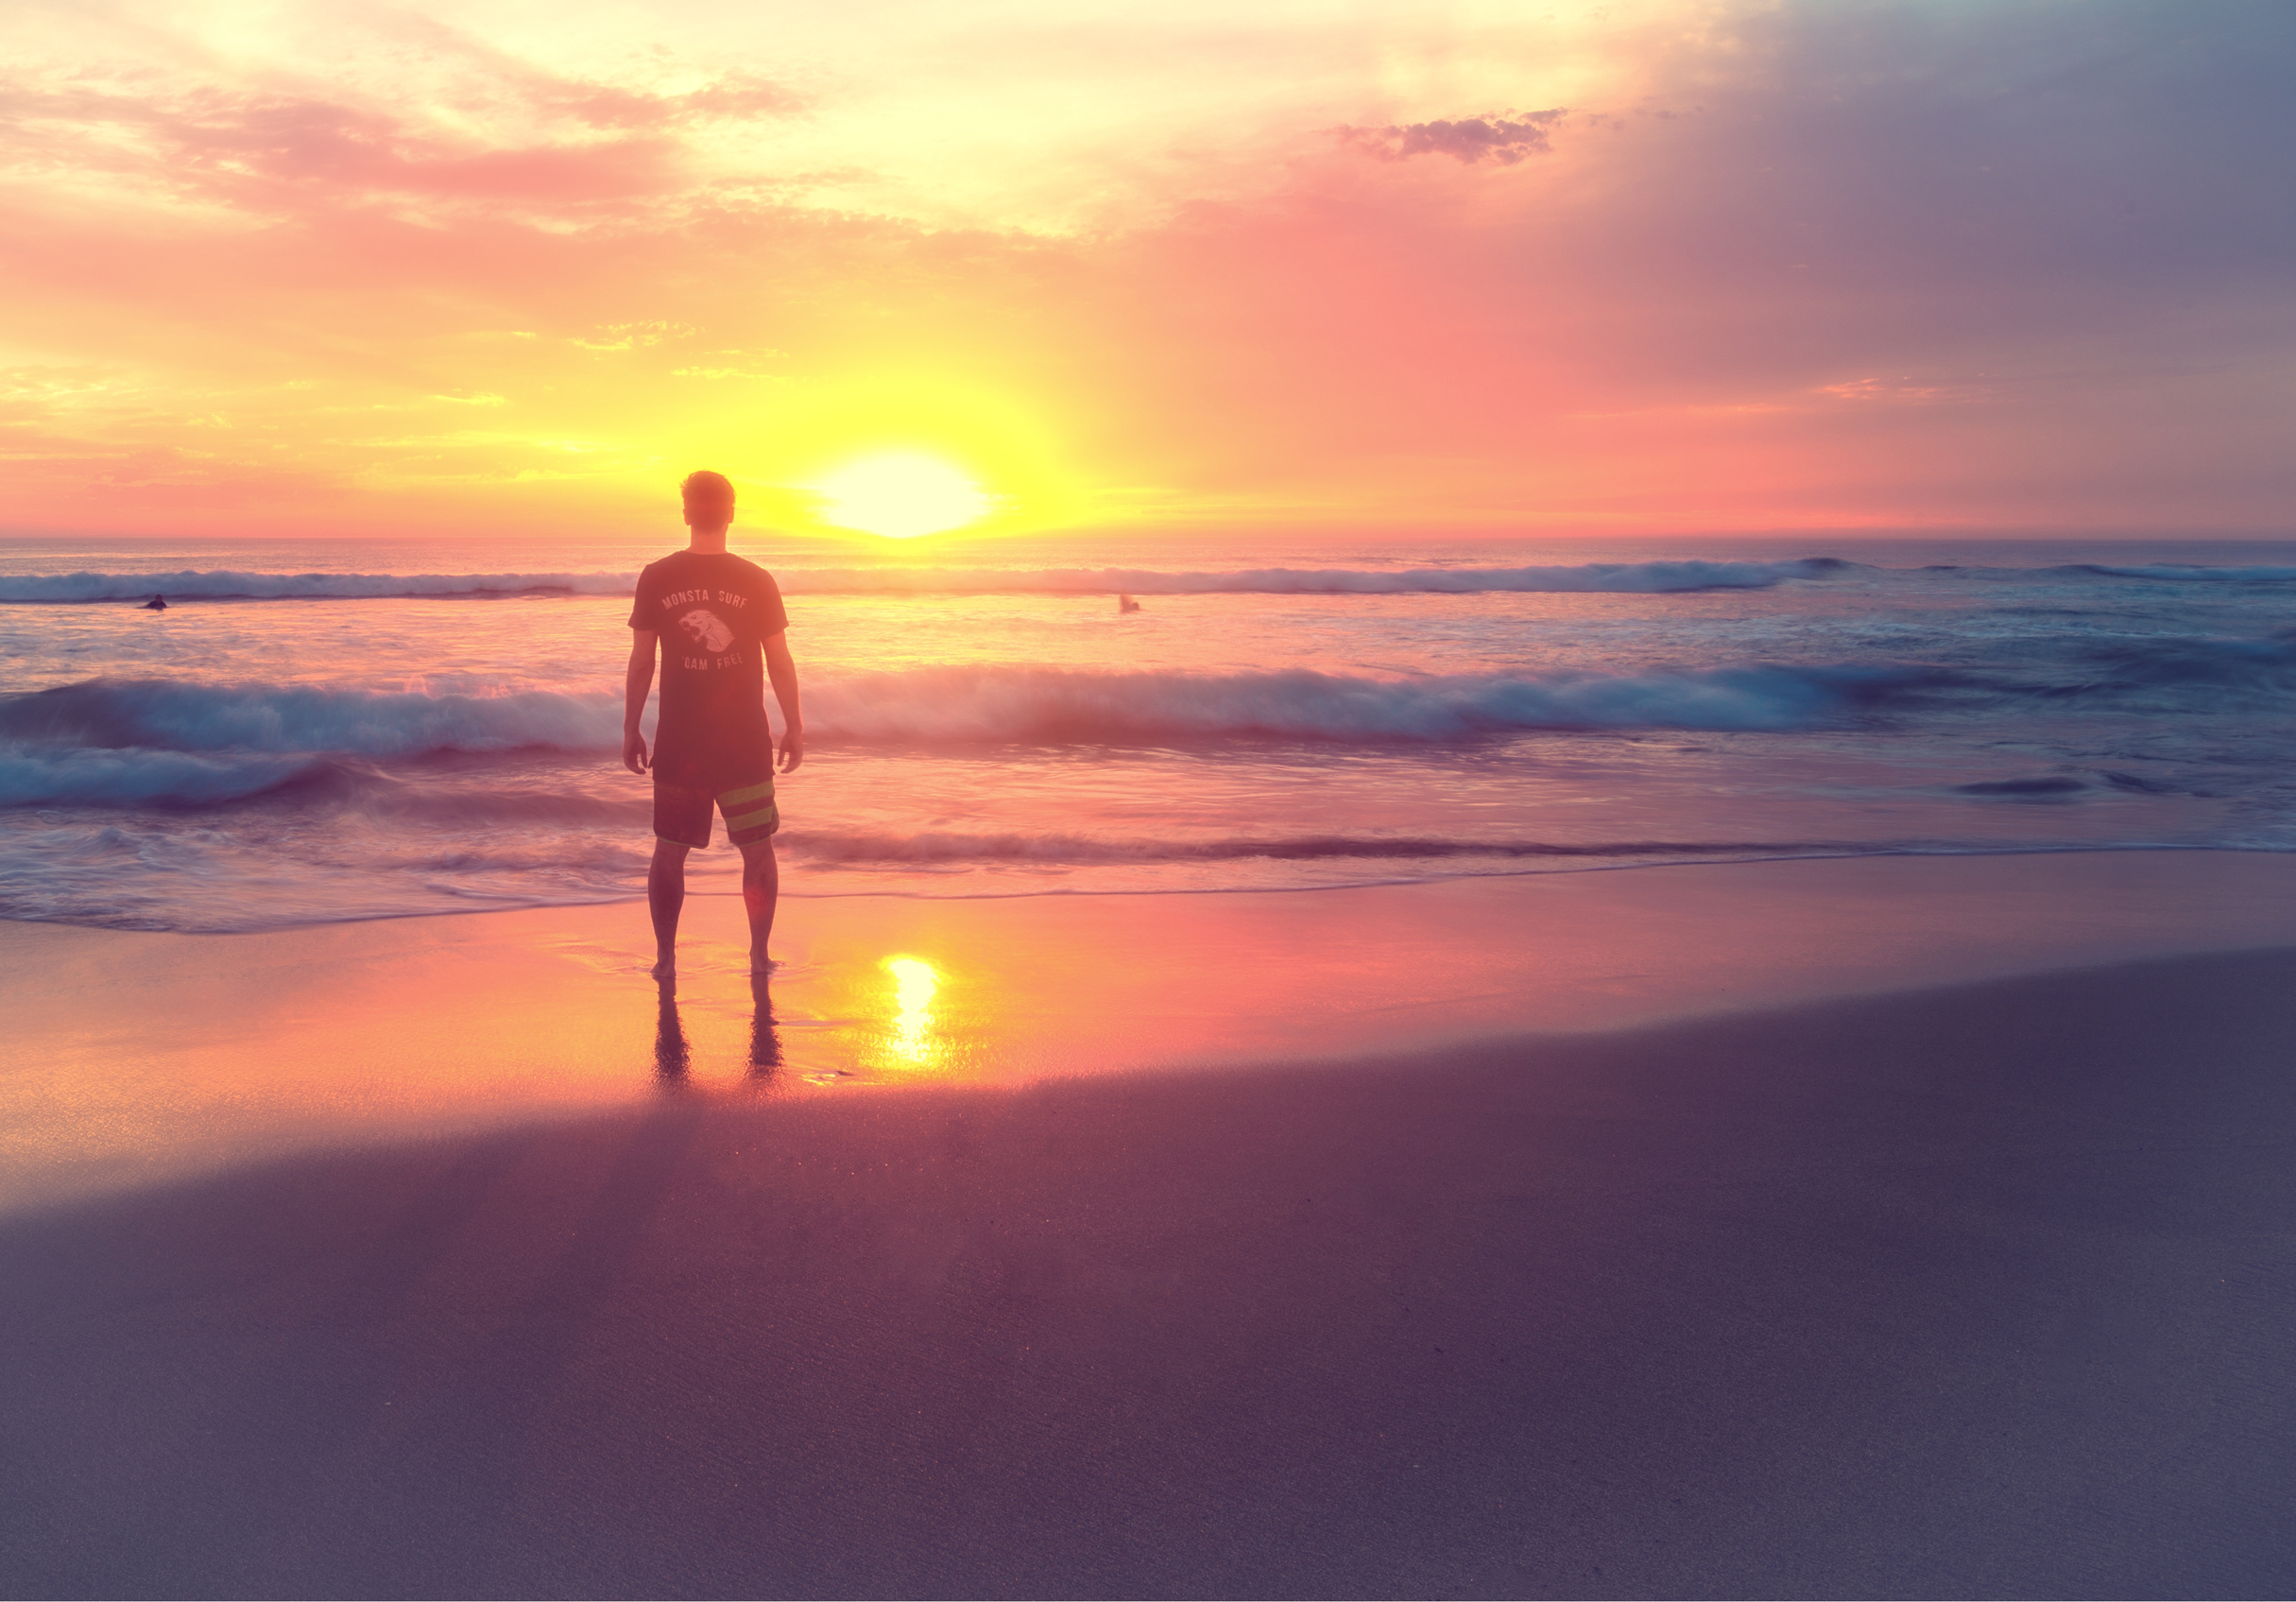 Young Man at Sunset on the Beach, Active, People, Sea, Ripple, HQ Photo